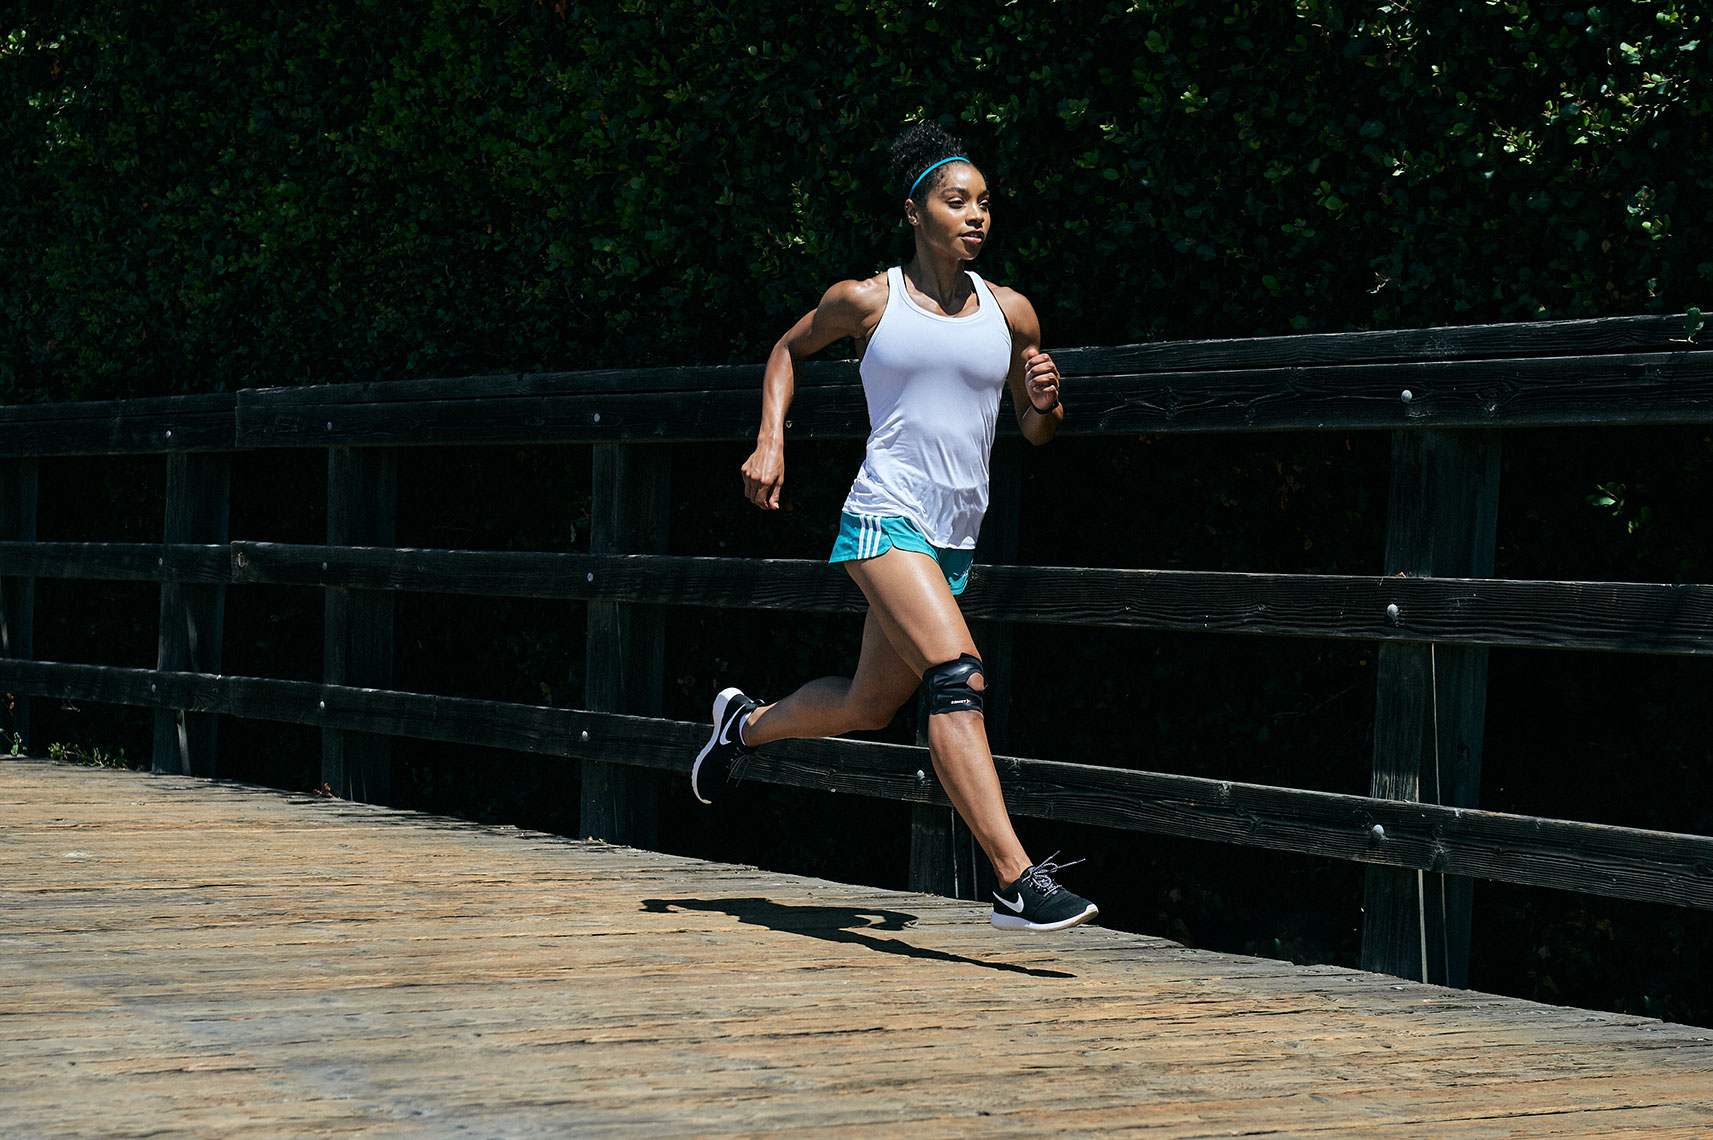 zamst-sports-photographer-orange-county-california-running-women